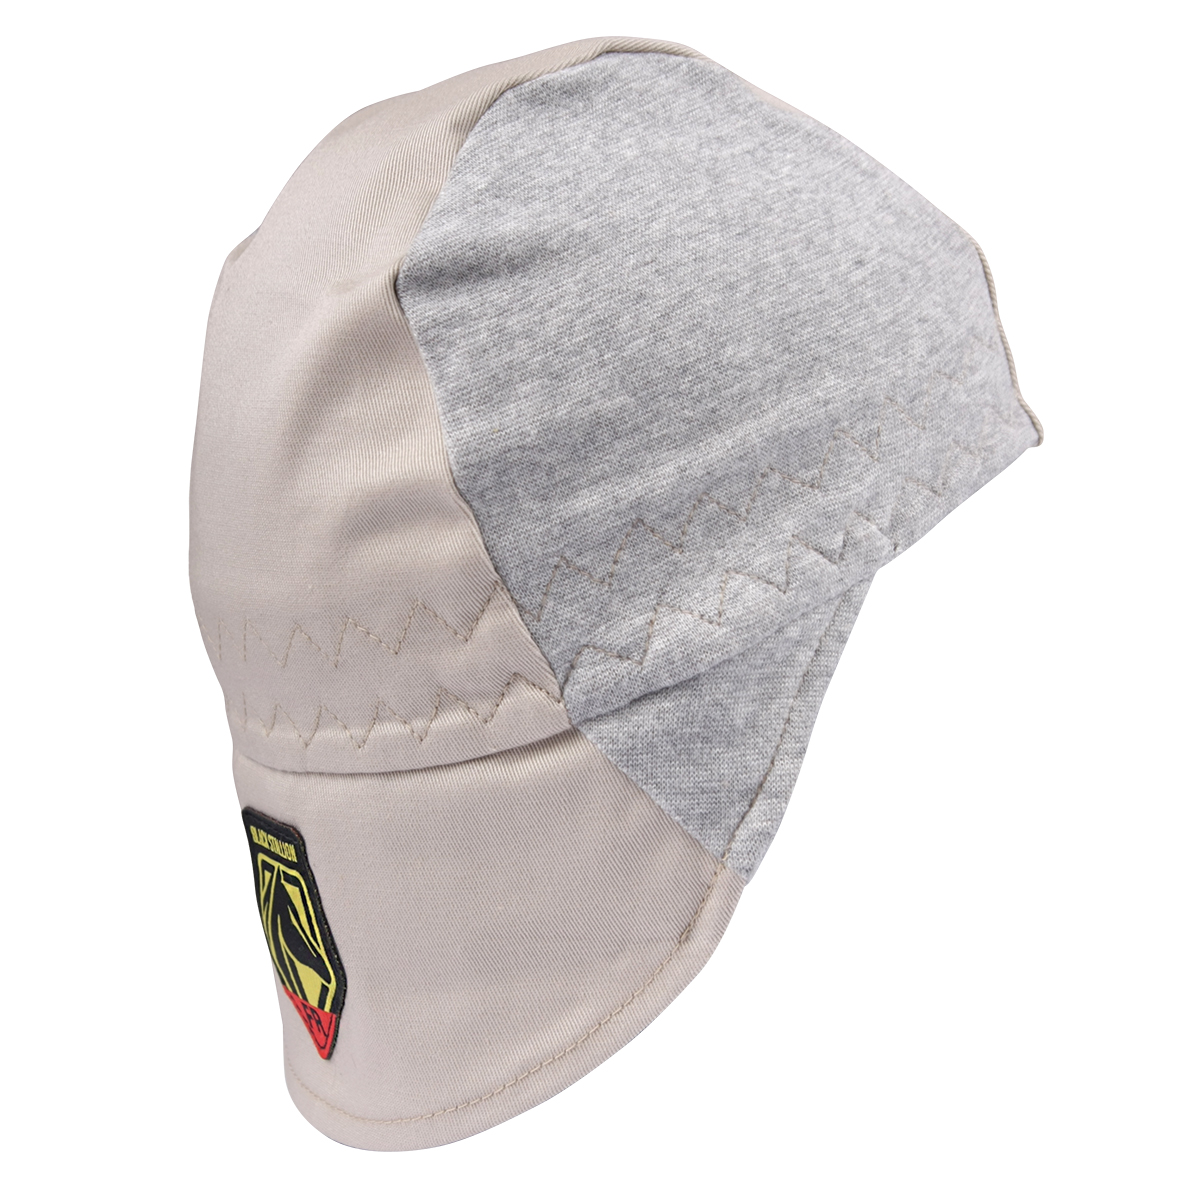 FR Cotton Welding Cap with Hidden Bill Extension, Gray/Stone Khaki #AH1630-GS